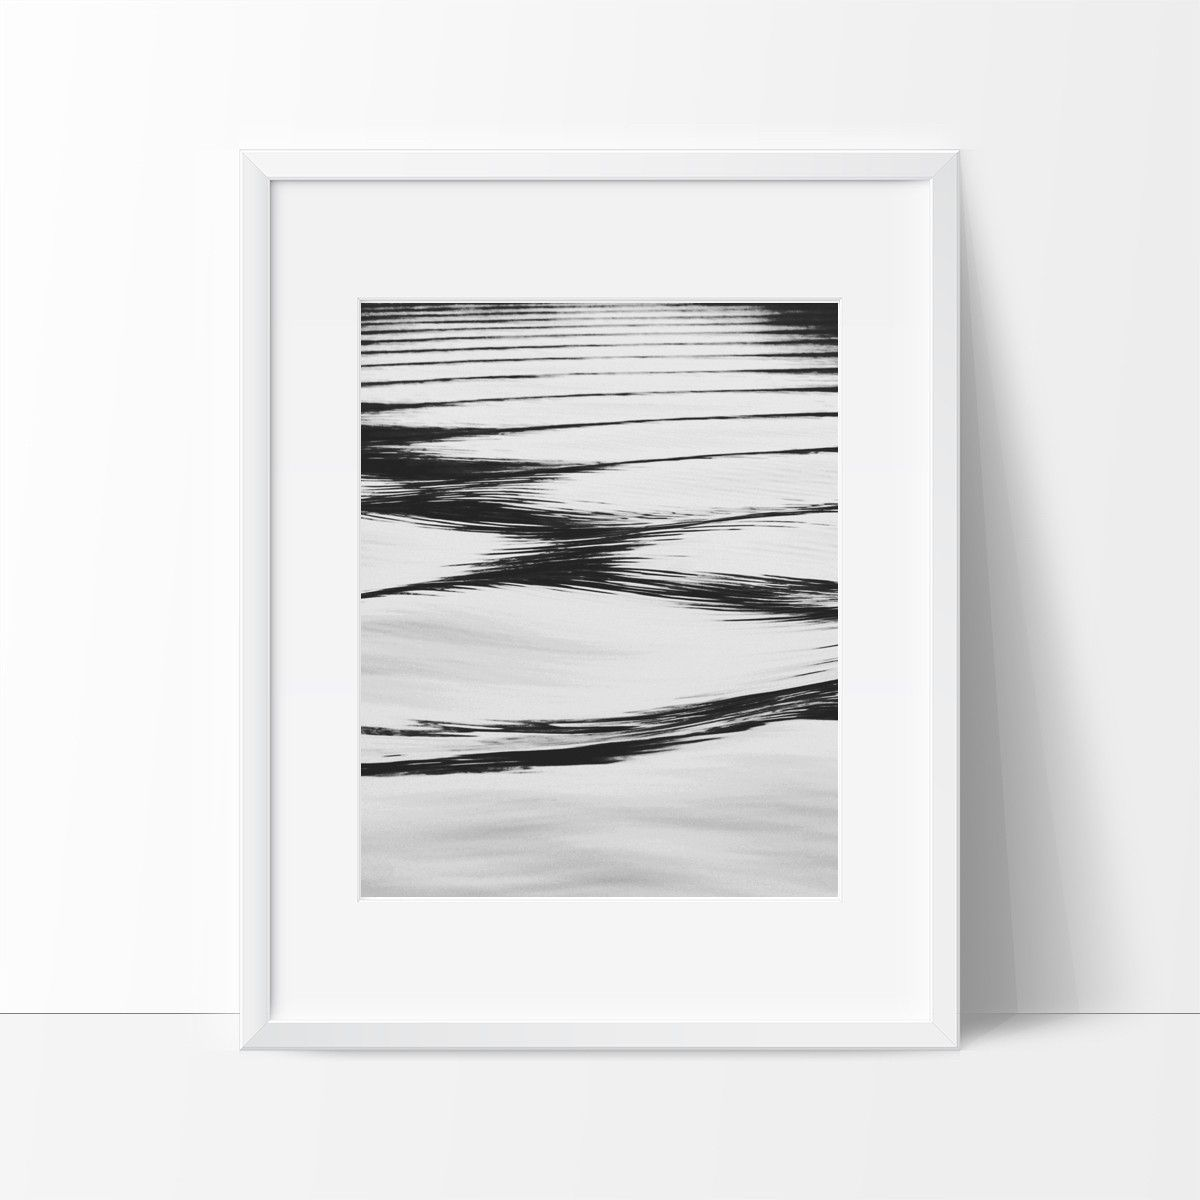 Ripples in the water photography wall art contemporary decor ideas